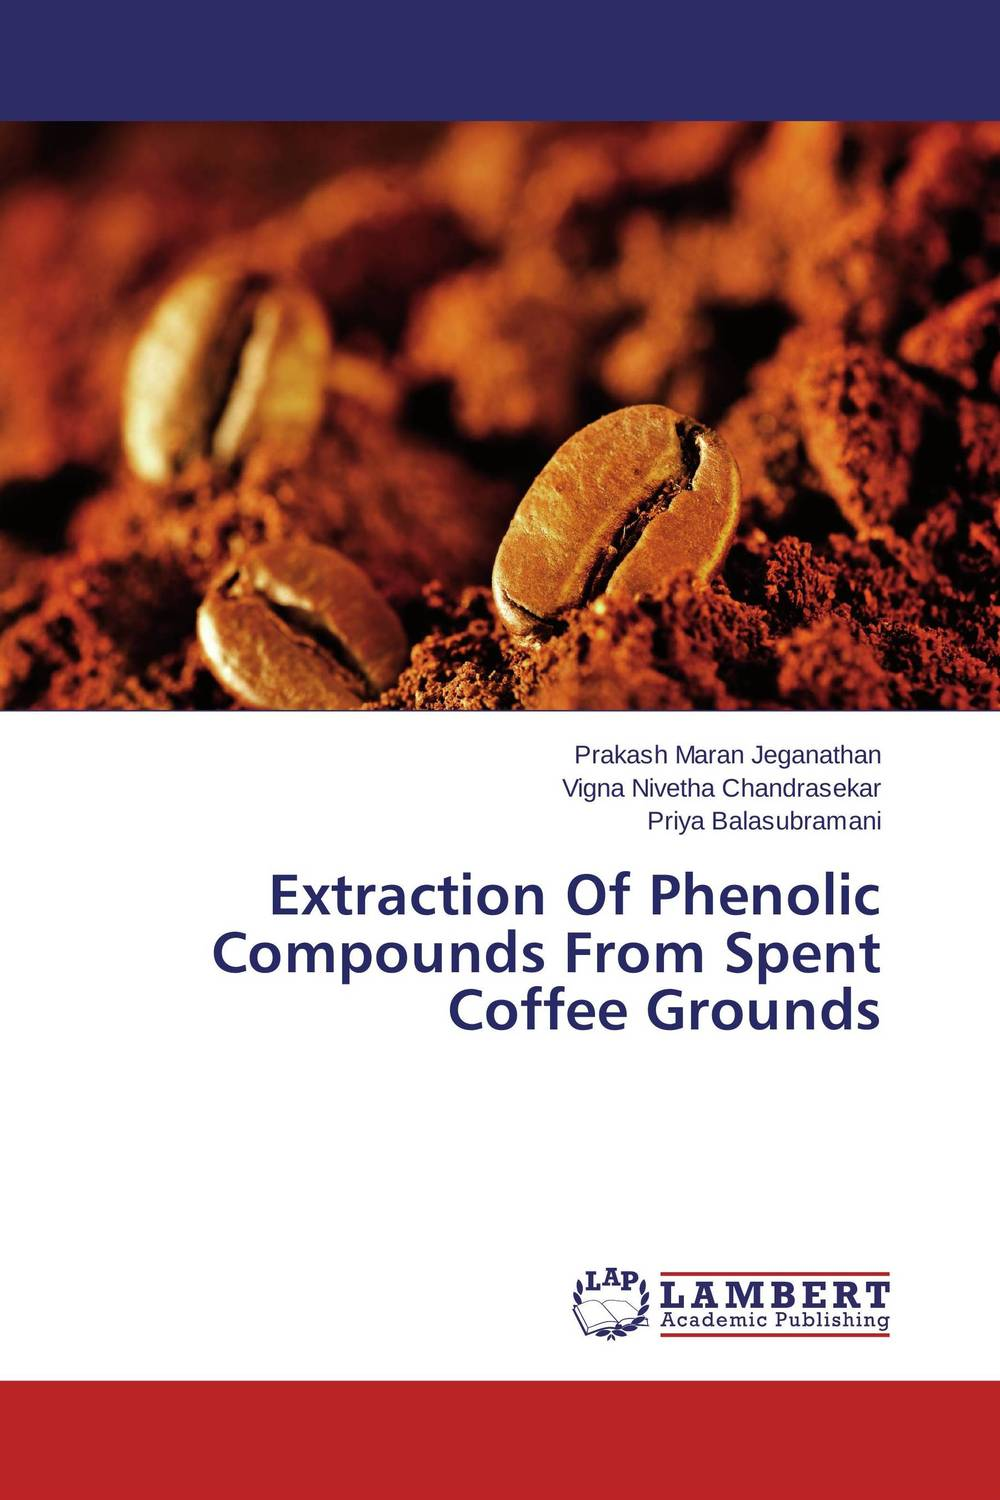 Extraction Of Phenolic Compounds From Spent Coffee Grounds user preference extraction from brain signals